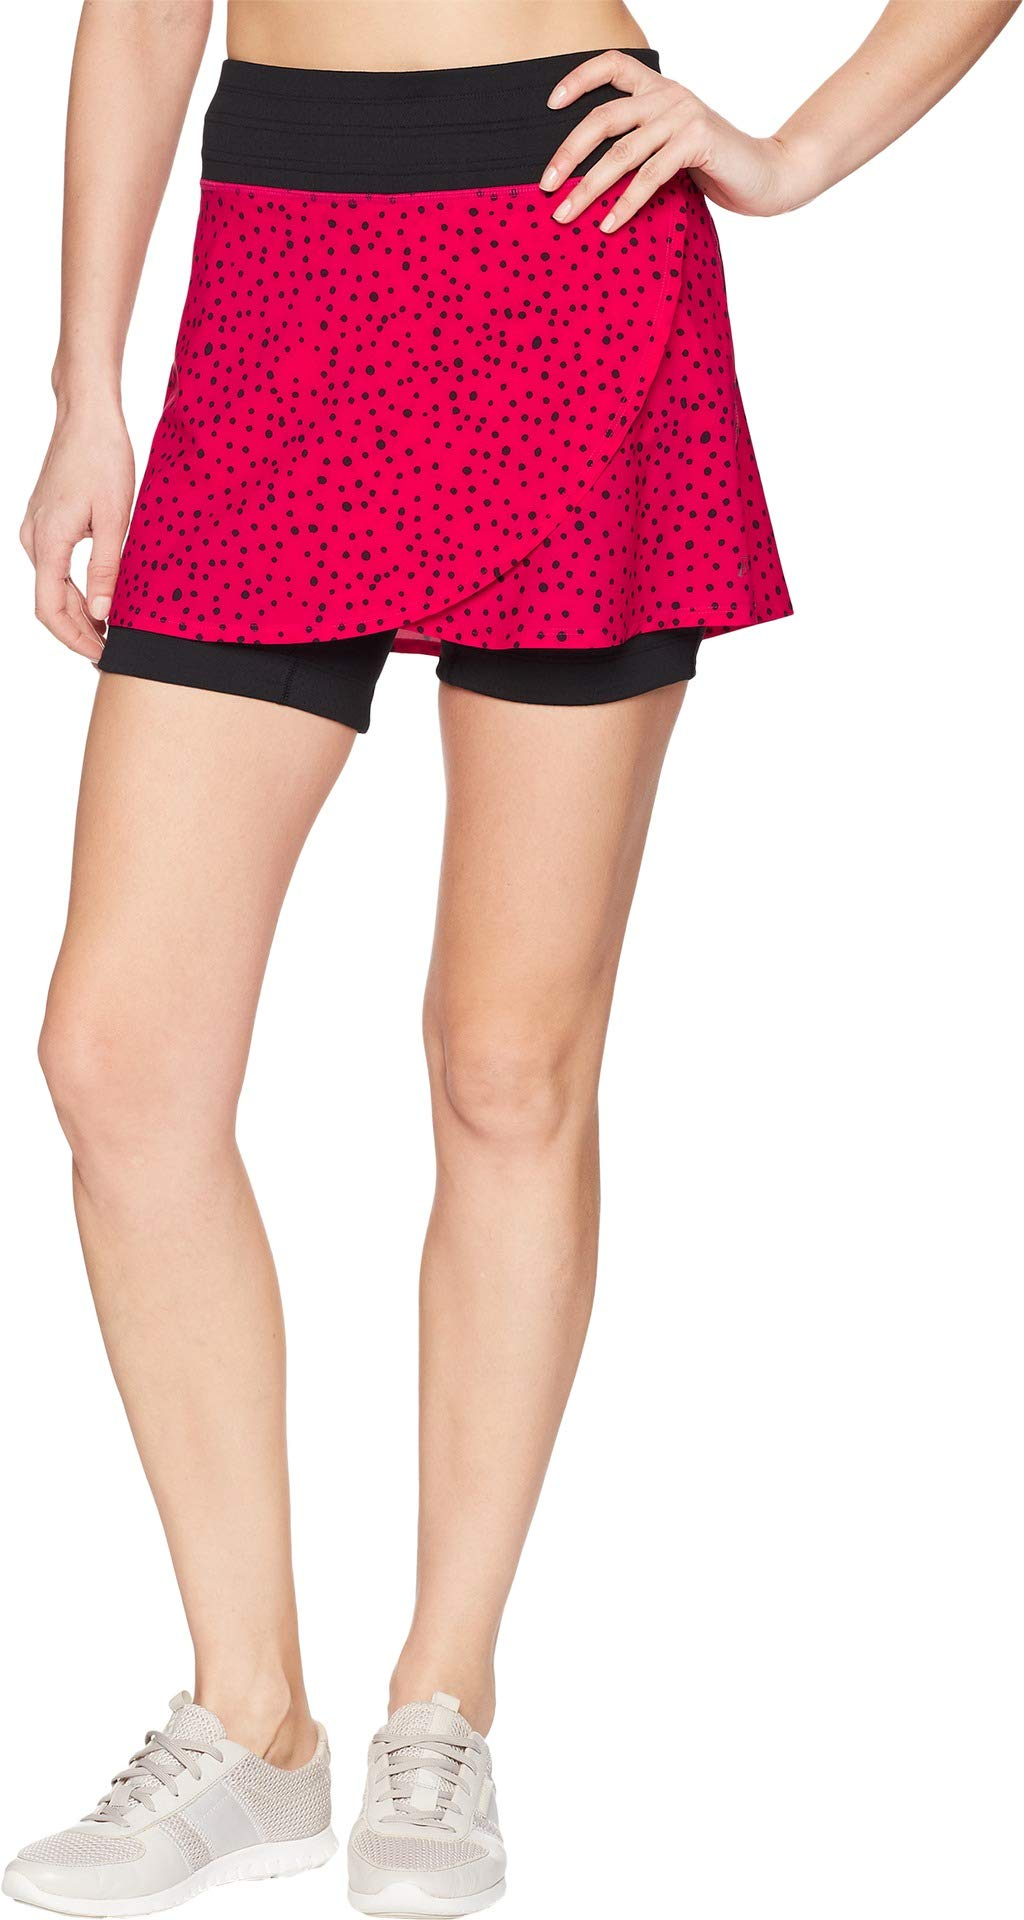 Skirt Sports Women's Hover Skirt, Bubbly Print, Large